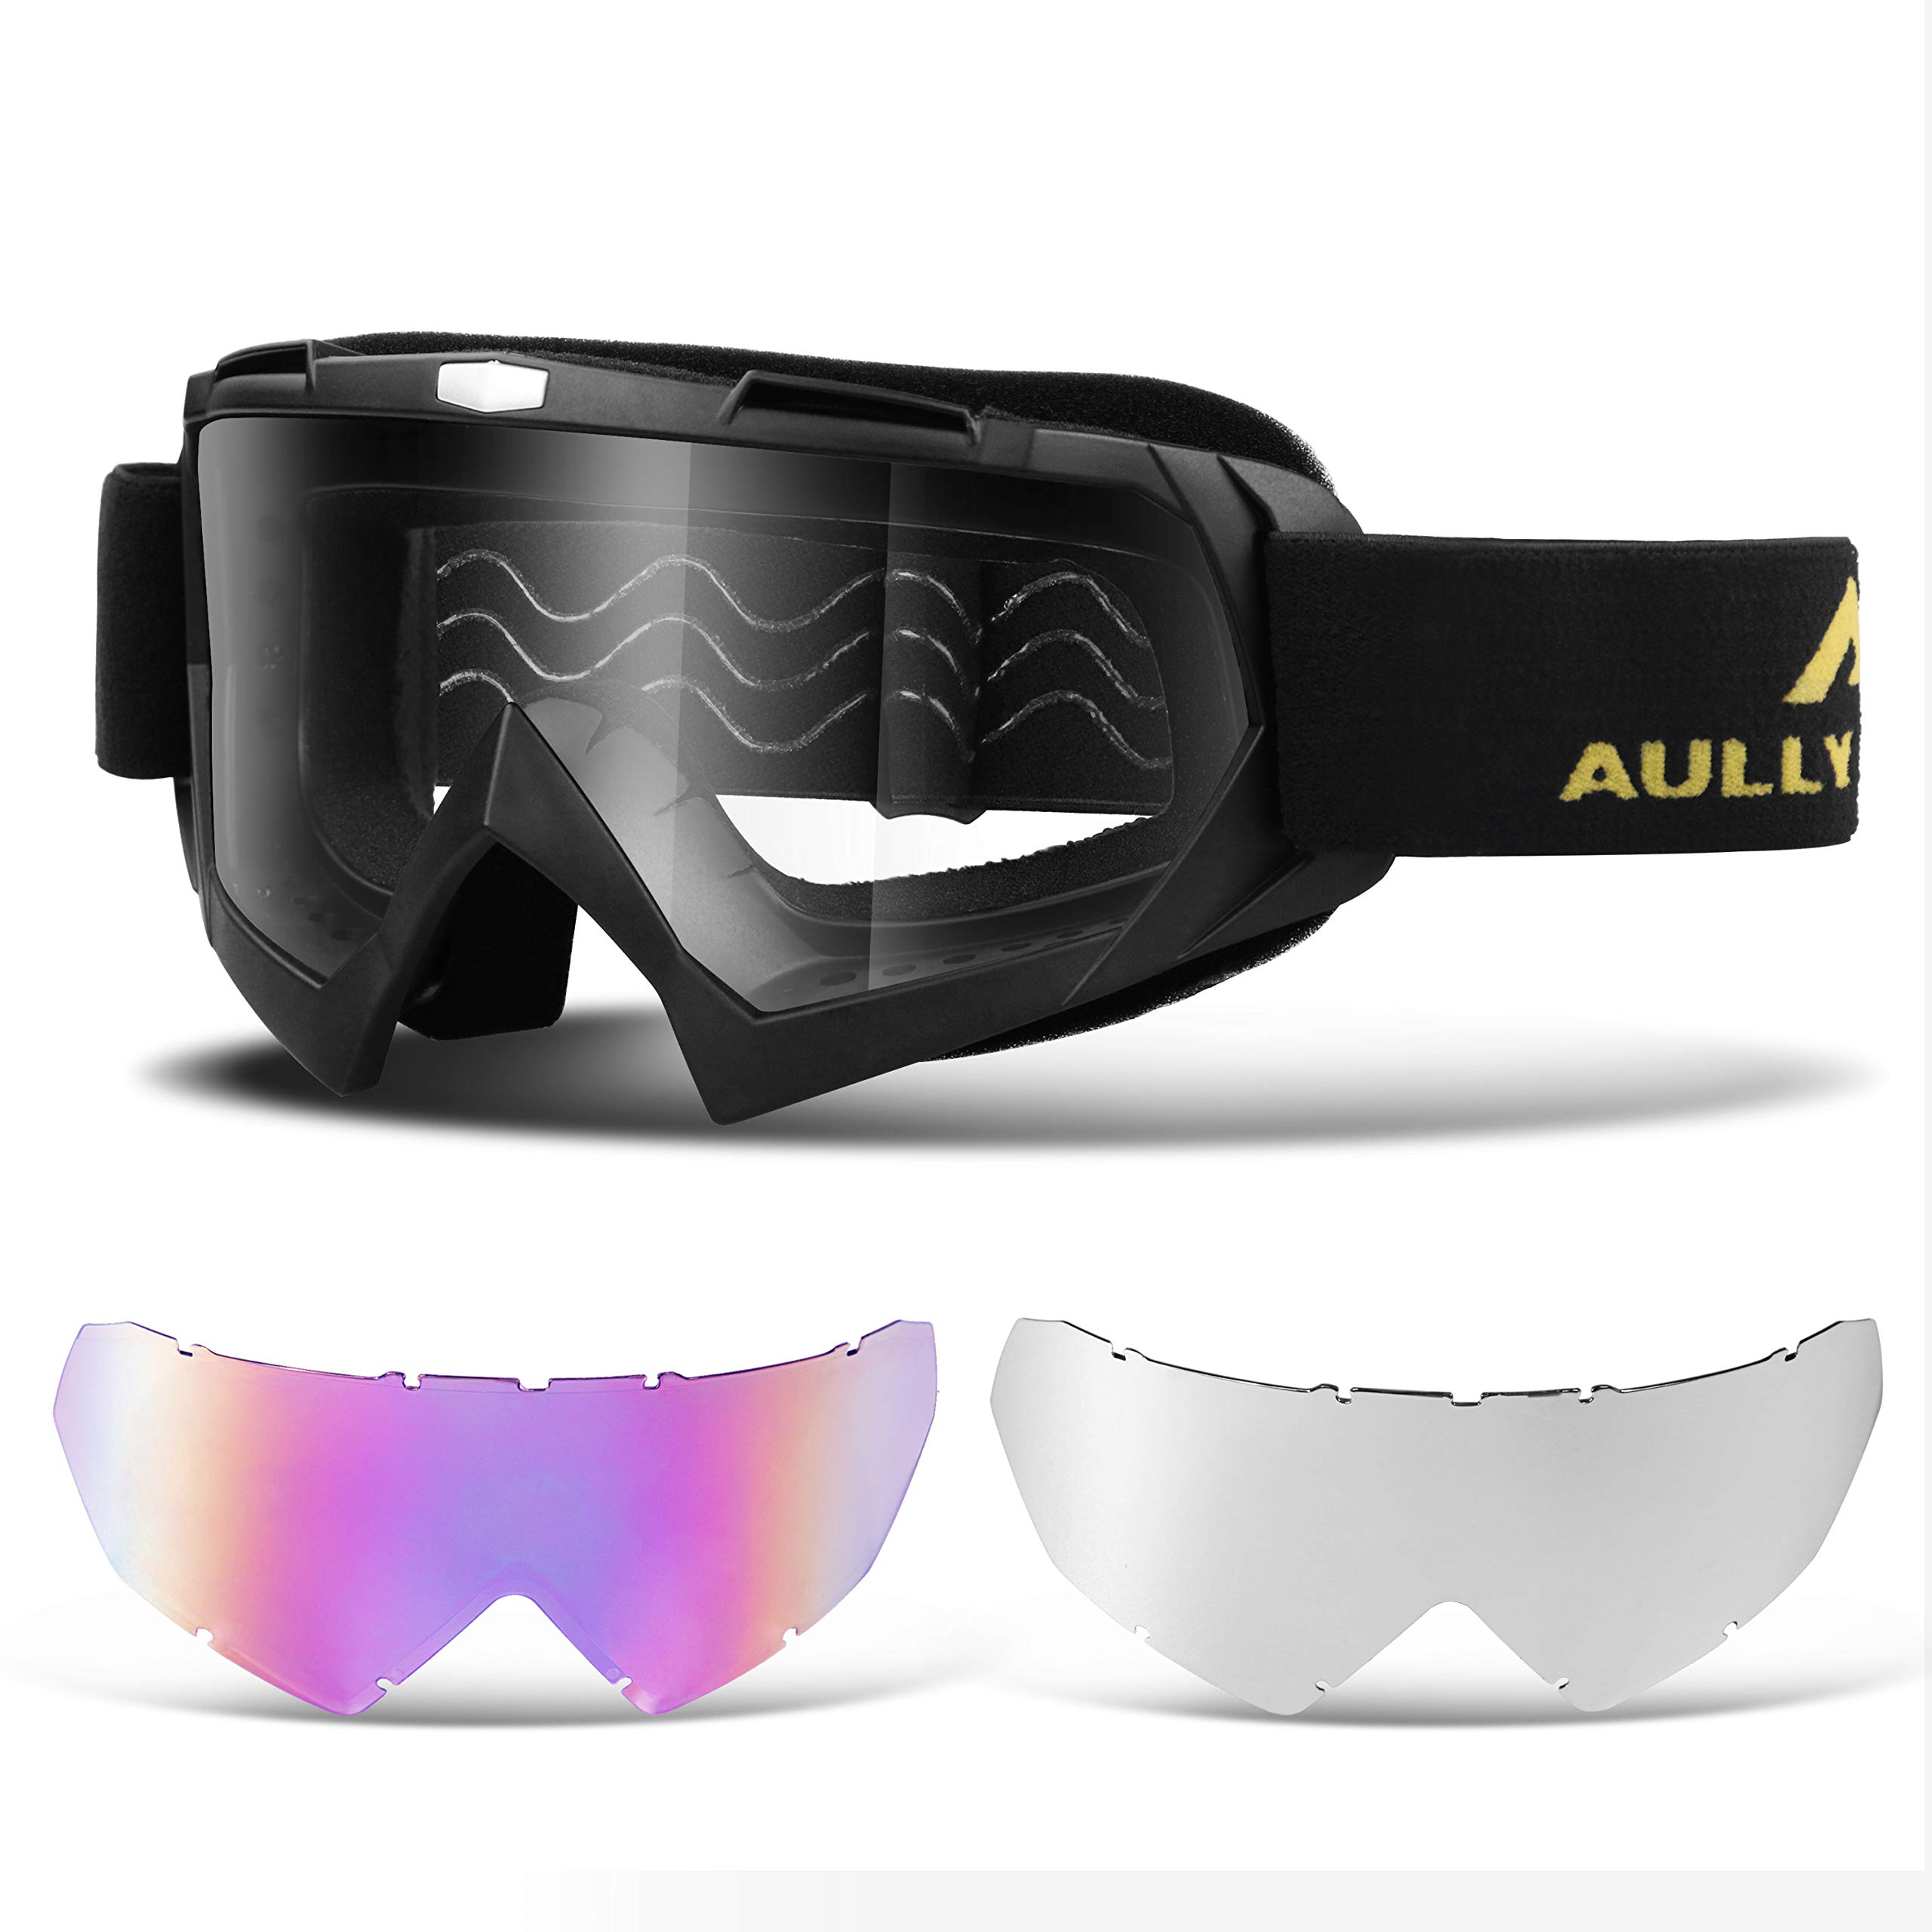 AULLY PARK Motorcycle Motocross Goggles ATV Racing Goggles Dirt Bike Mx Goggle Glasses with 3 Lens Kit Fit for Men Women Youth Kids